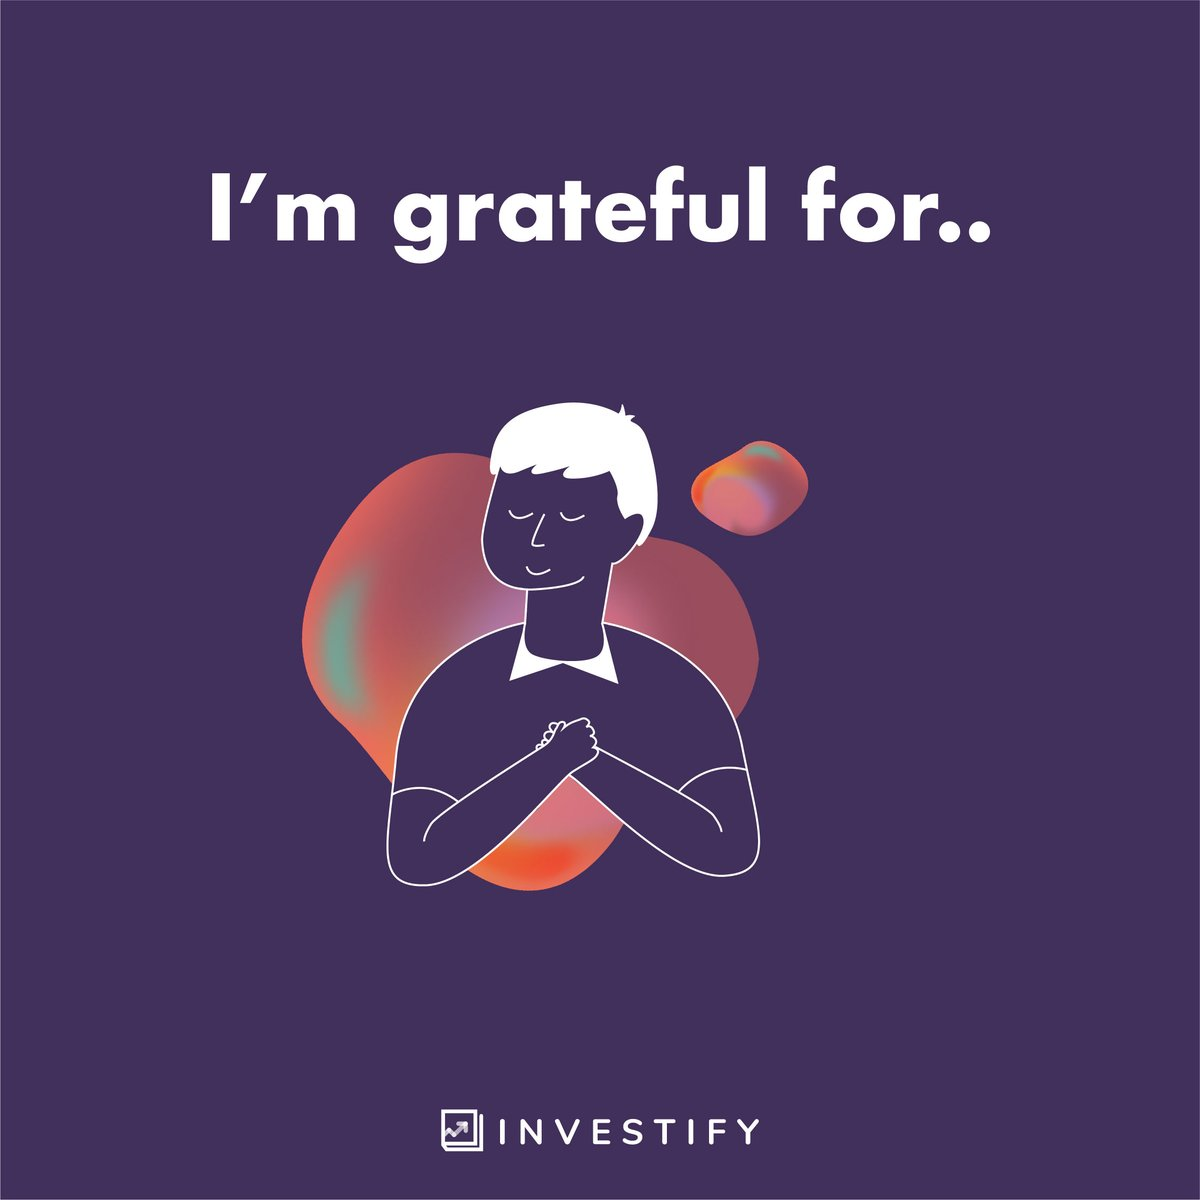 What are you grateful for? This Mental Health Awareness Week, we want to remind everyone that amidst the chaos there are still things to be grateful for. Nature, Family & Food... you're craving pancakes now aren't you? #investifylimited #MentalHealthAwarenessWeek2020 https://t.co/xvHQWeX8nJ